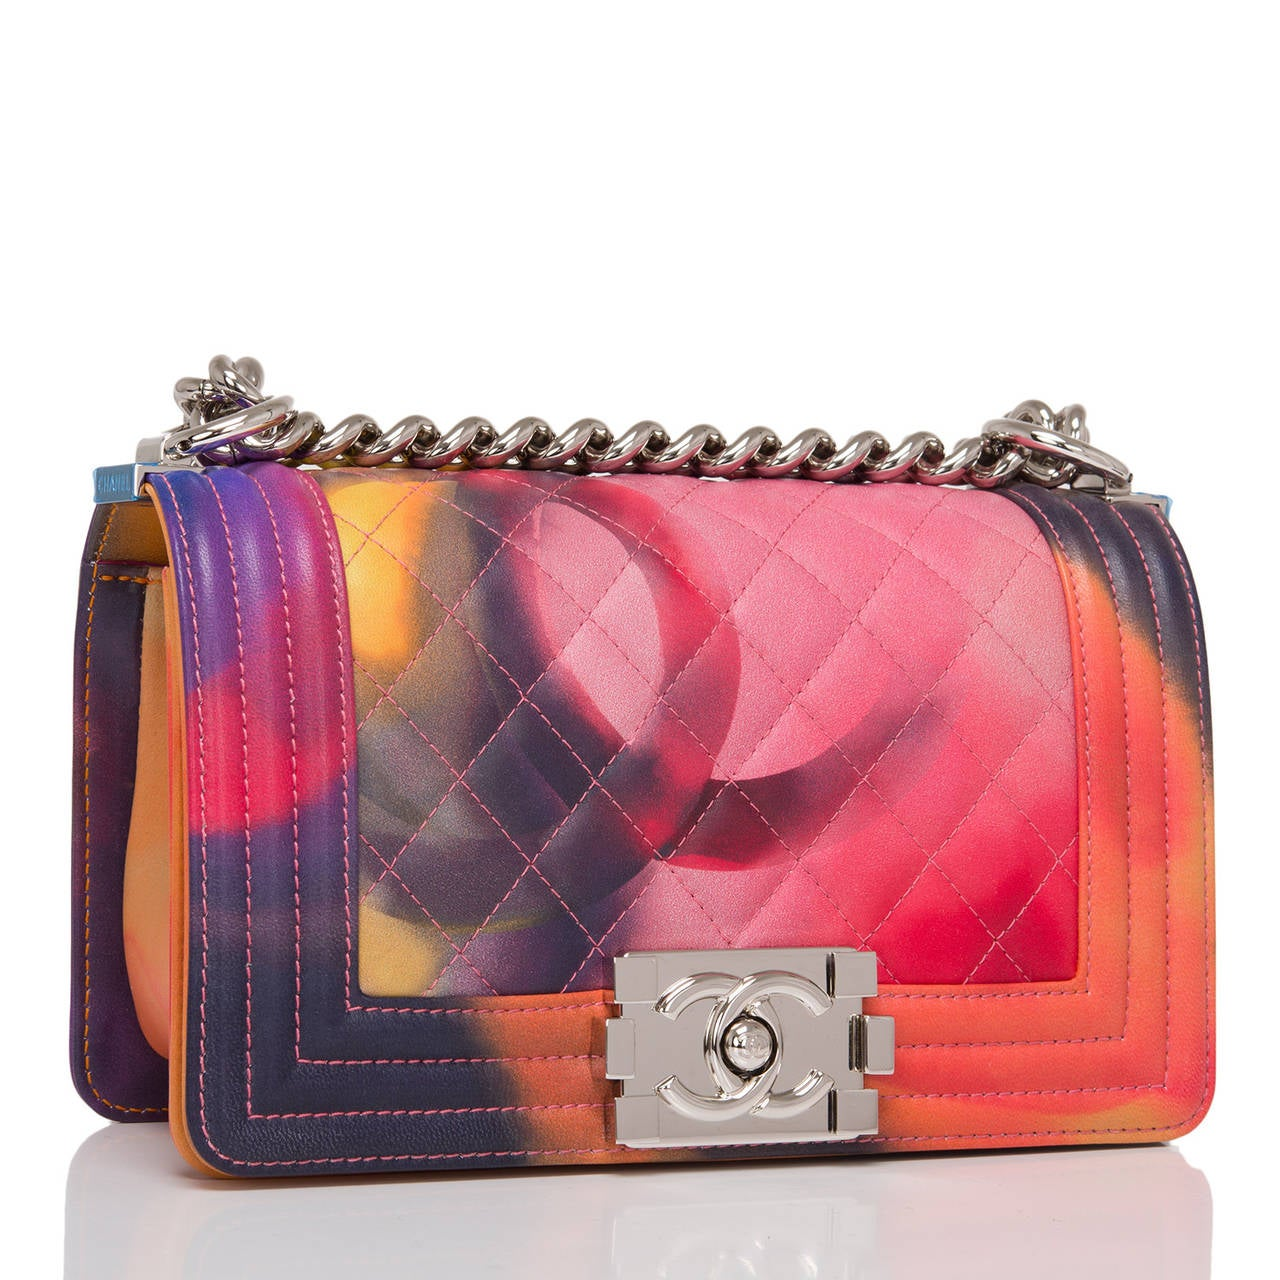 Chanel Flower Power Small Boy Bag At 1stdibs